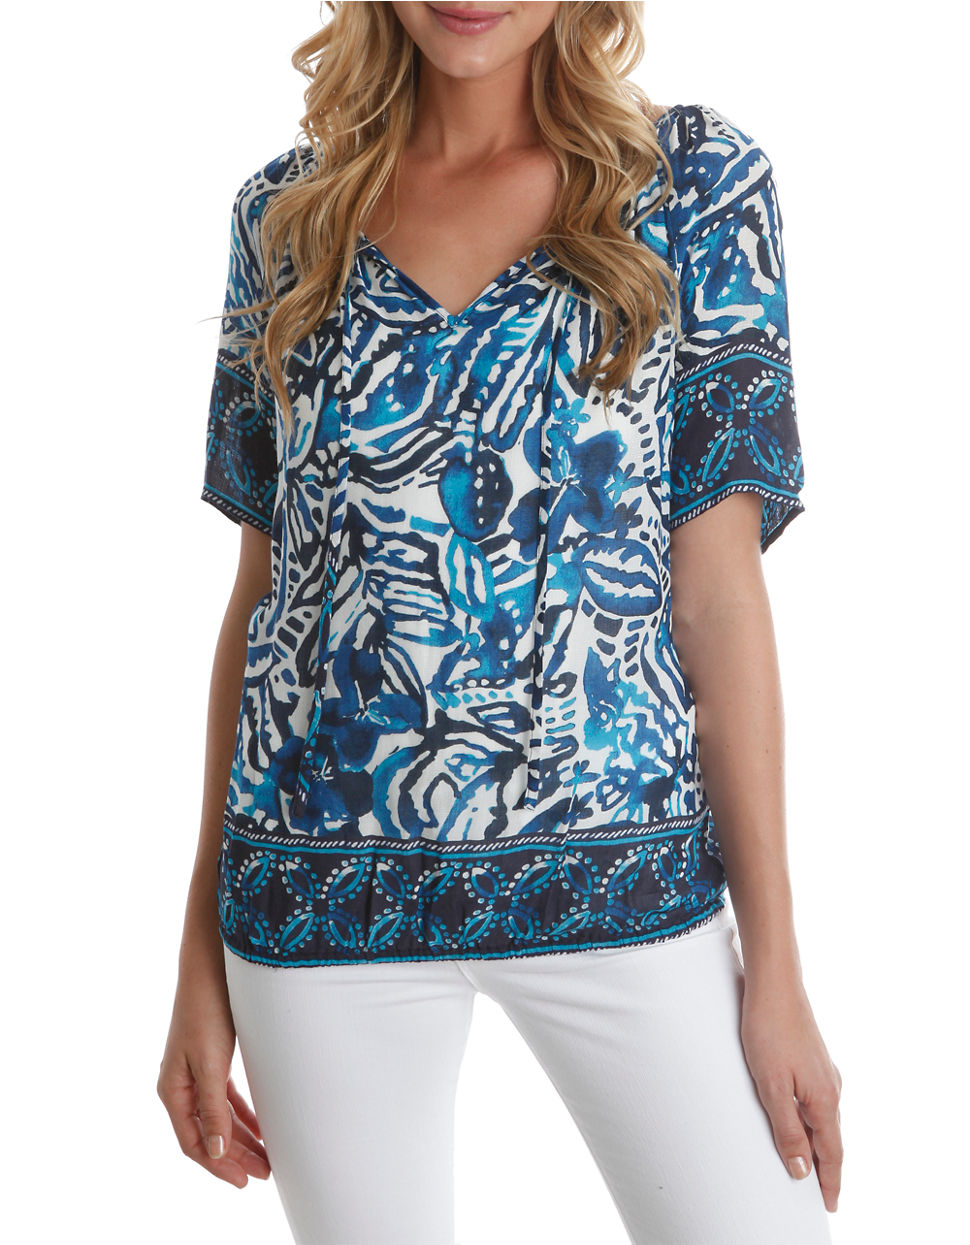 195e324d982bee Lyst - Lucky Brand Abstract Floral Print Tie-Neck Top in Blue